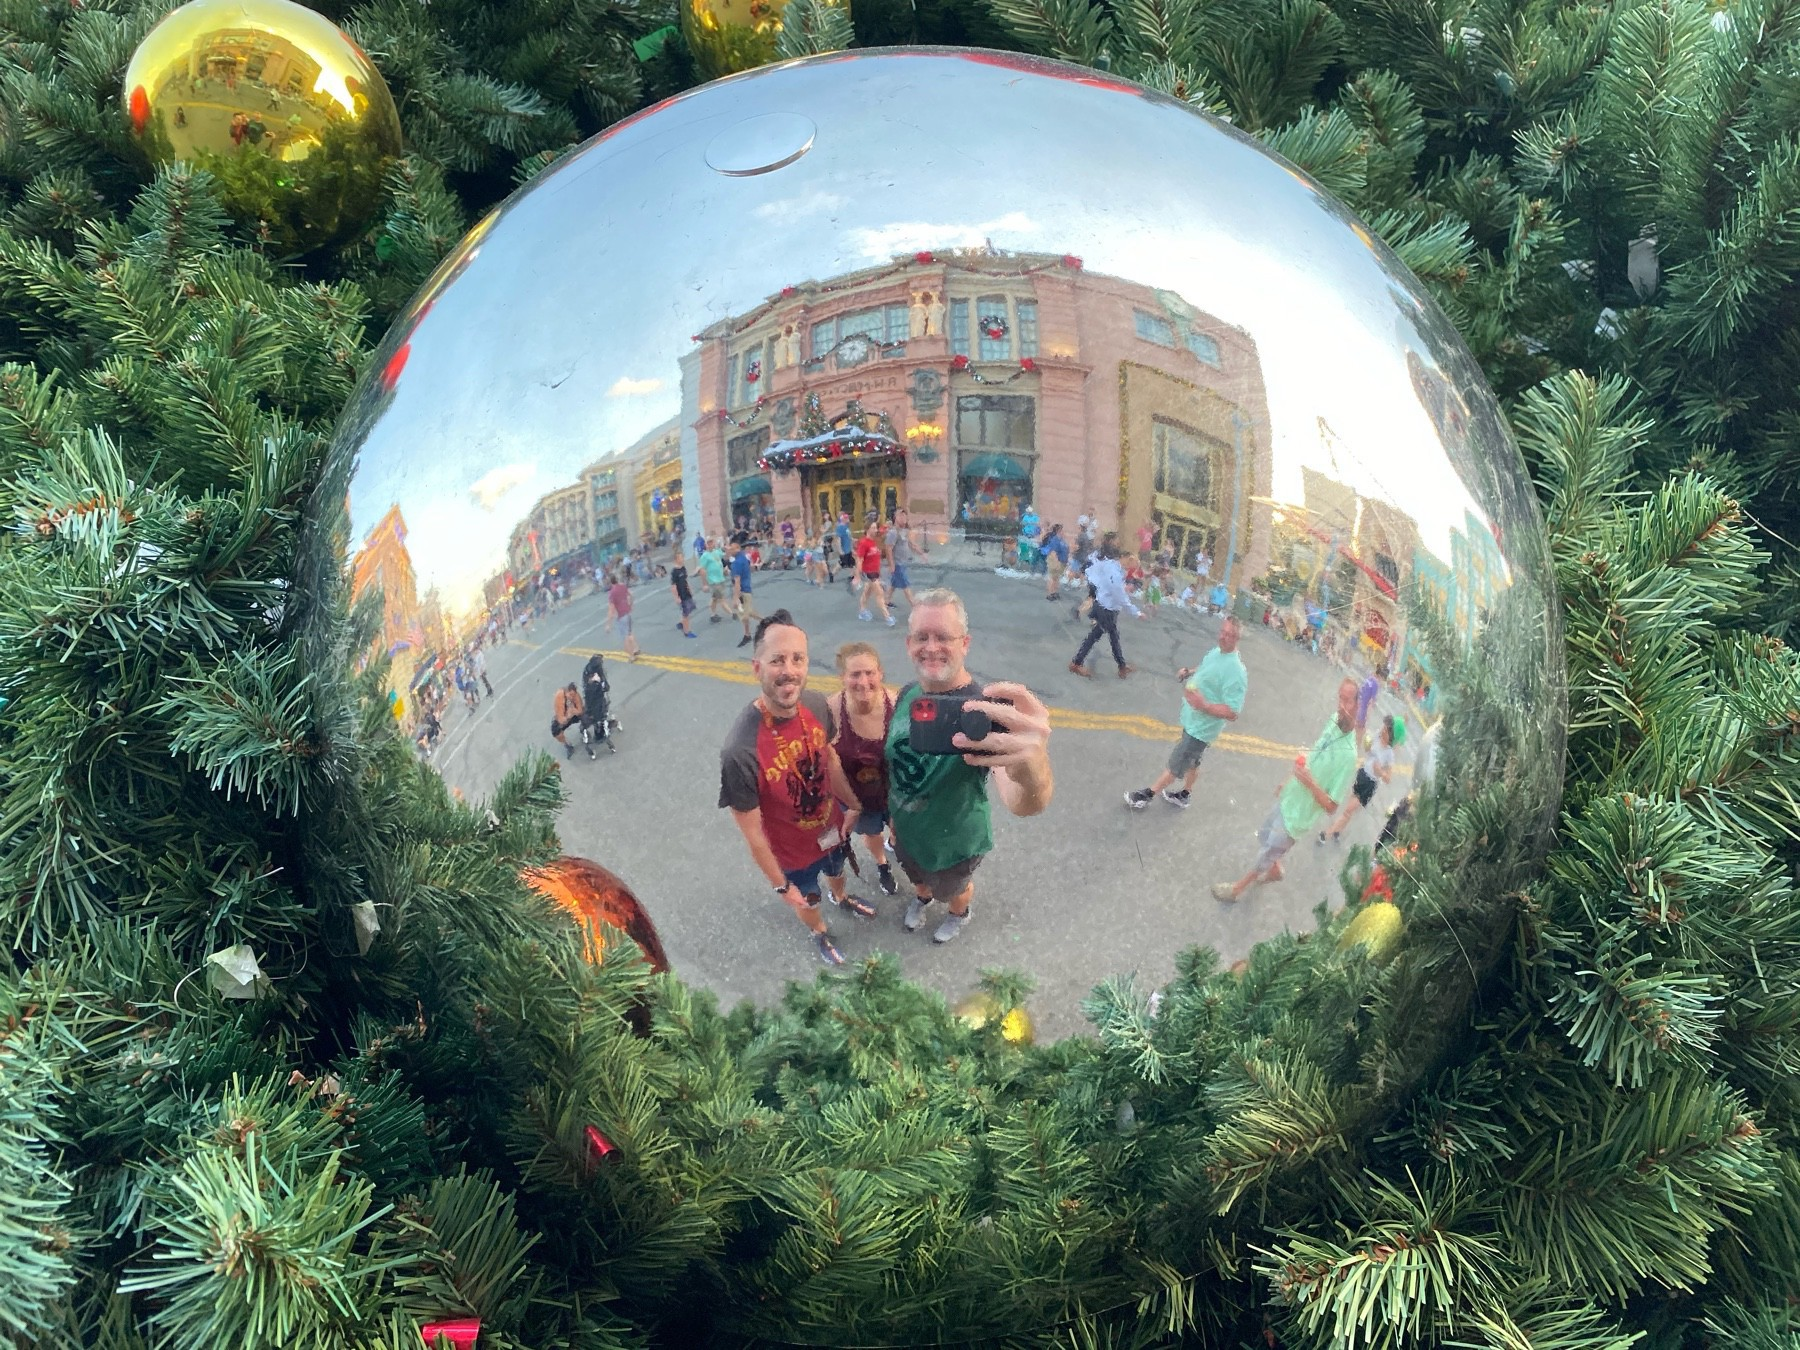 A group of three people (one female and two males) take a photo of their reflection in a giant, silver Christmas tree ornament with buildings in the background.